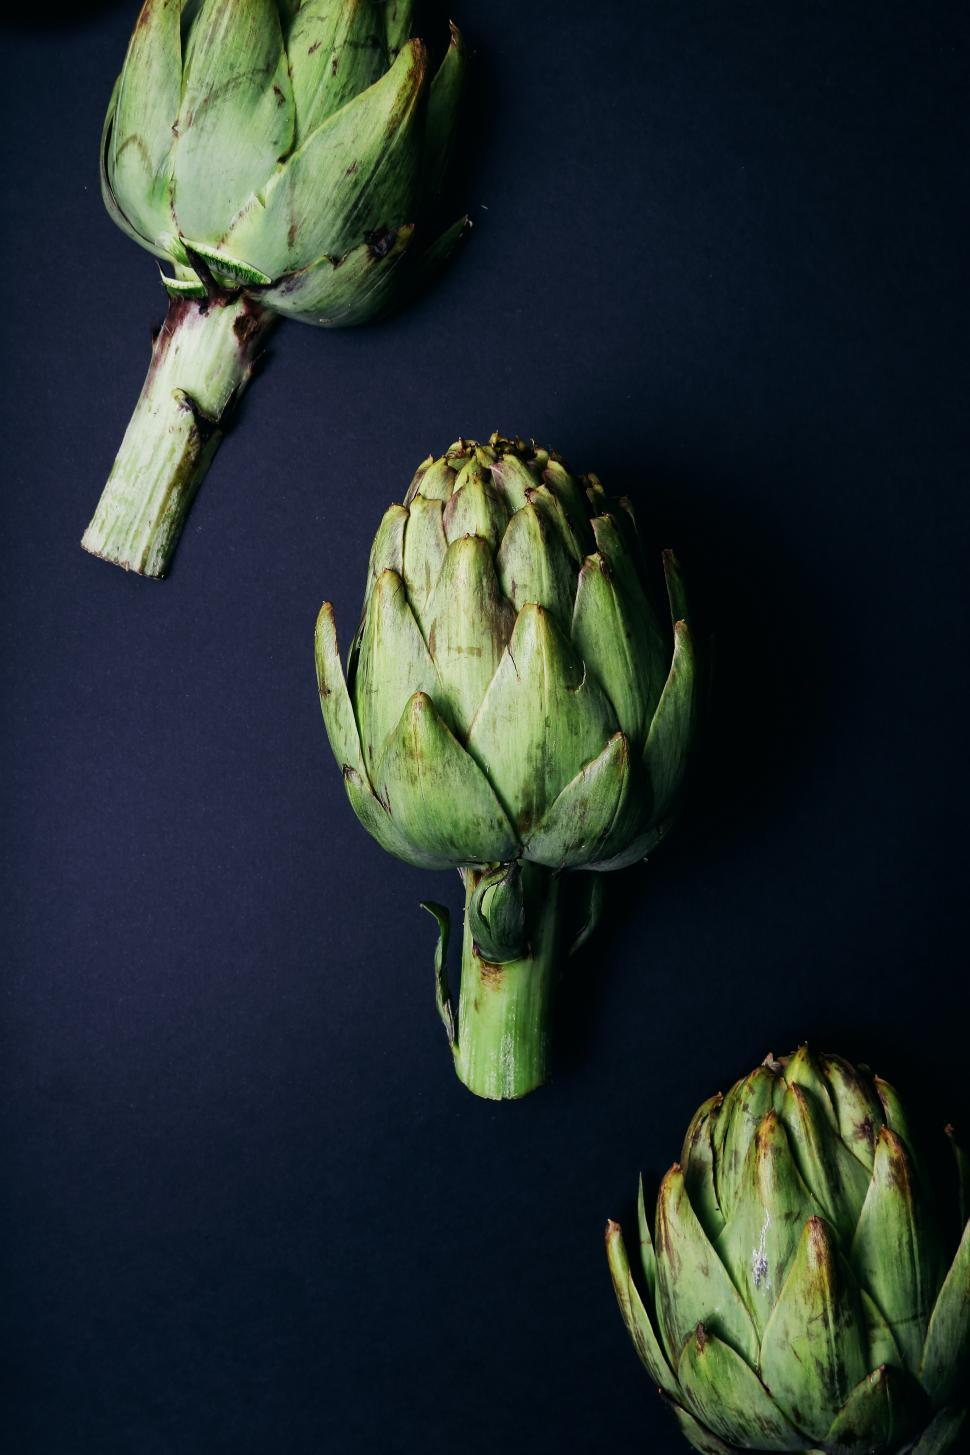 Download Free Stock Photo of Artichokes arranged on a dark background